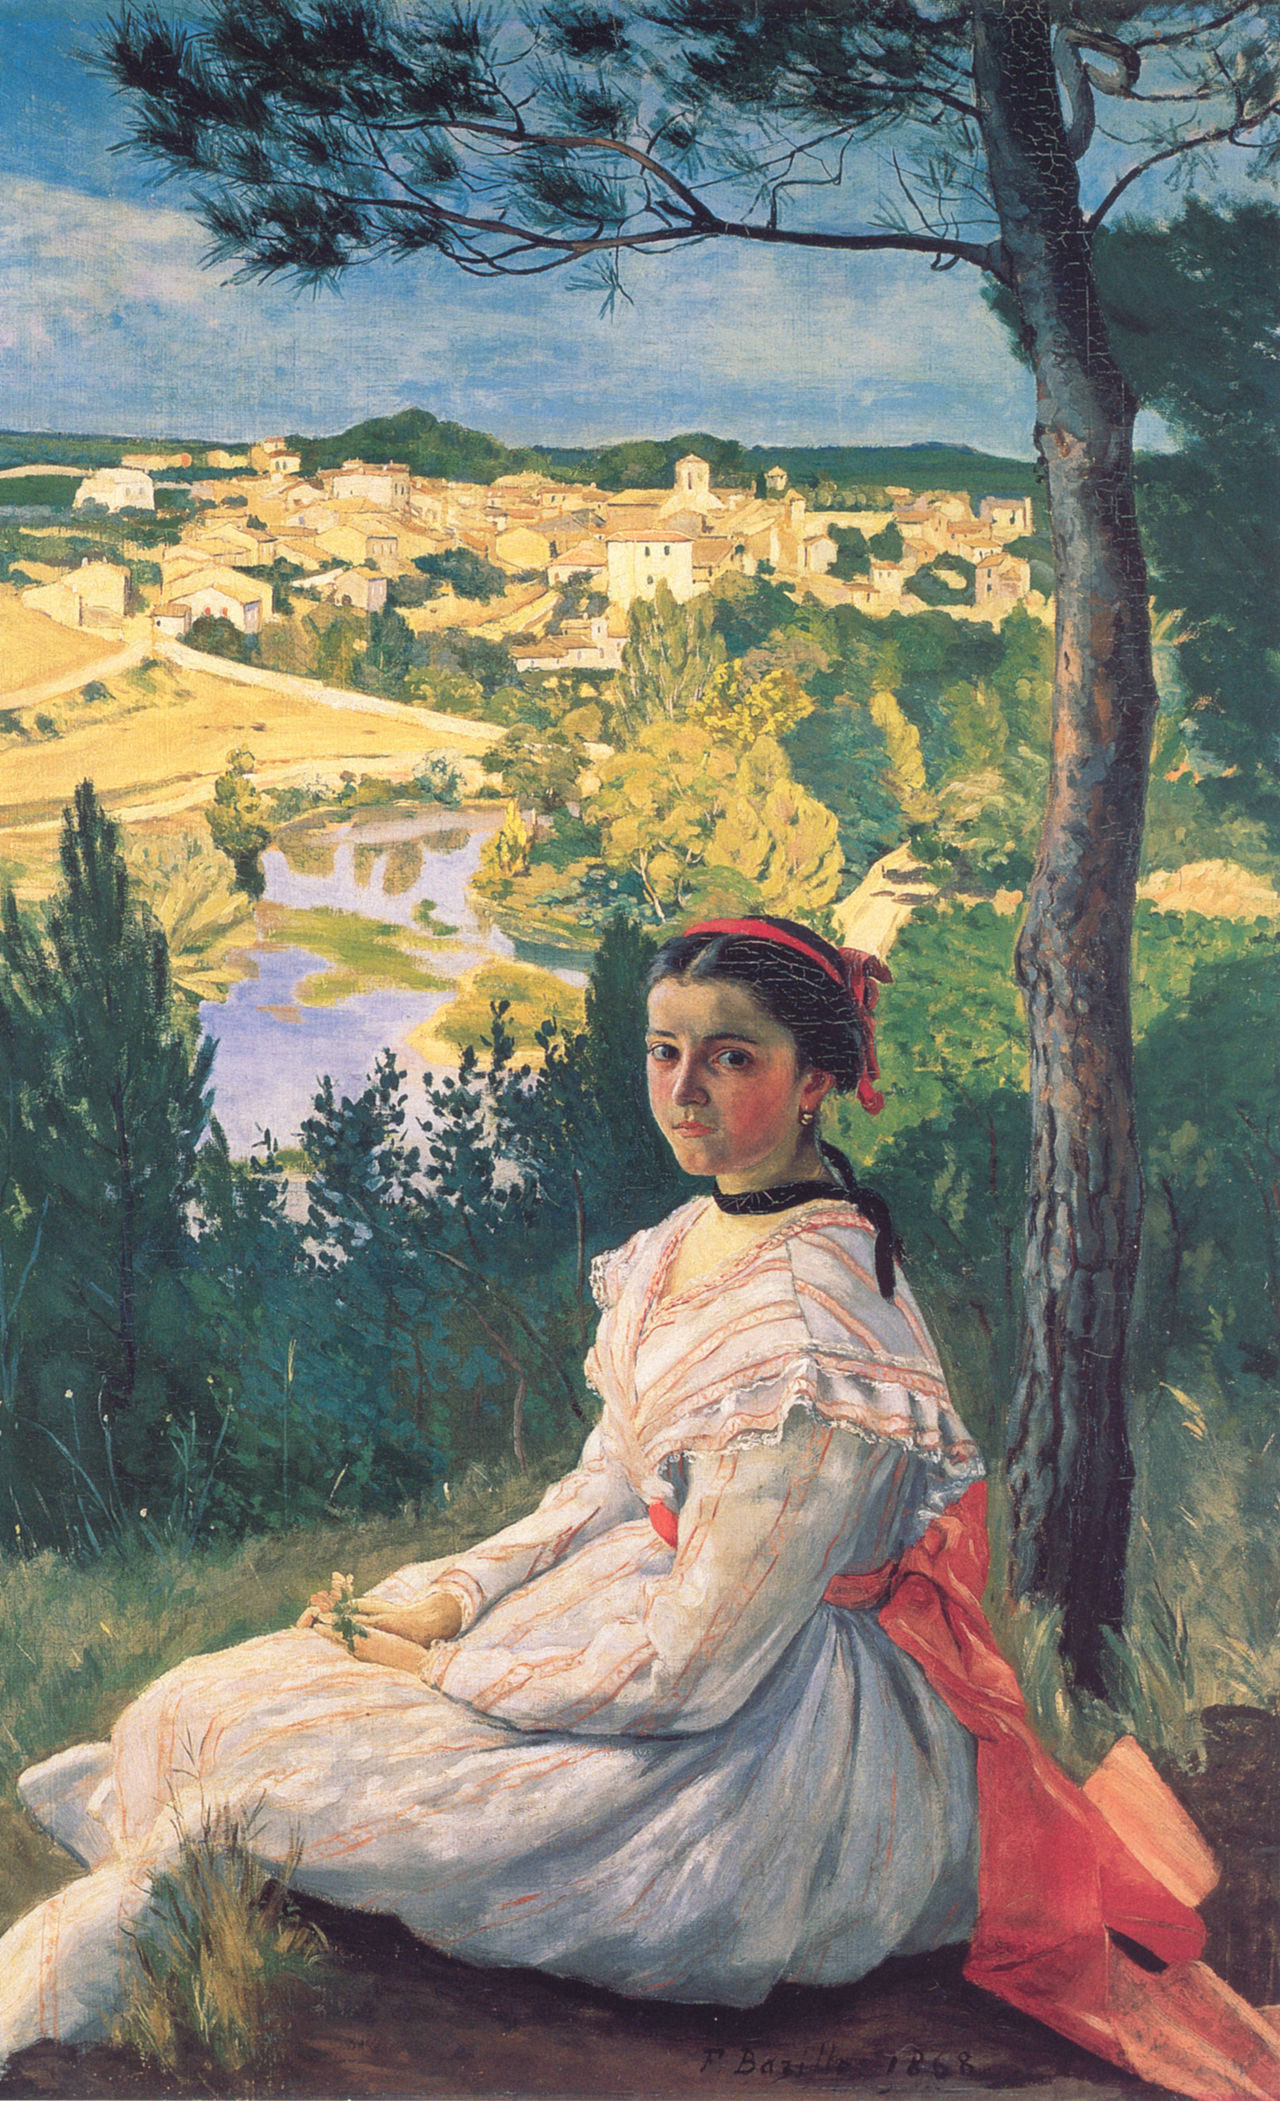 bazille_view_of_the_village